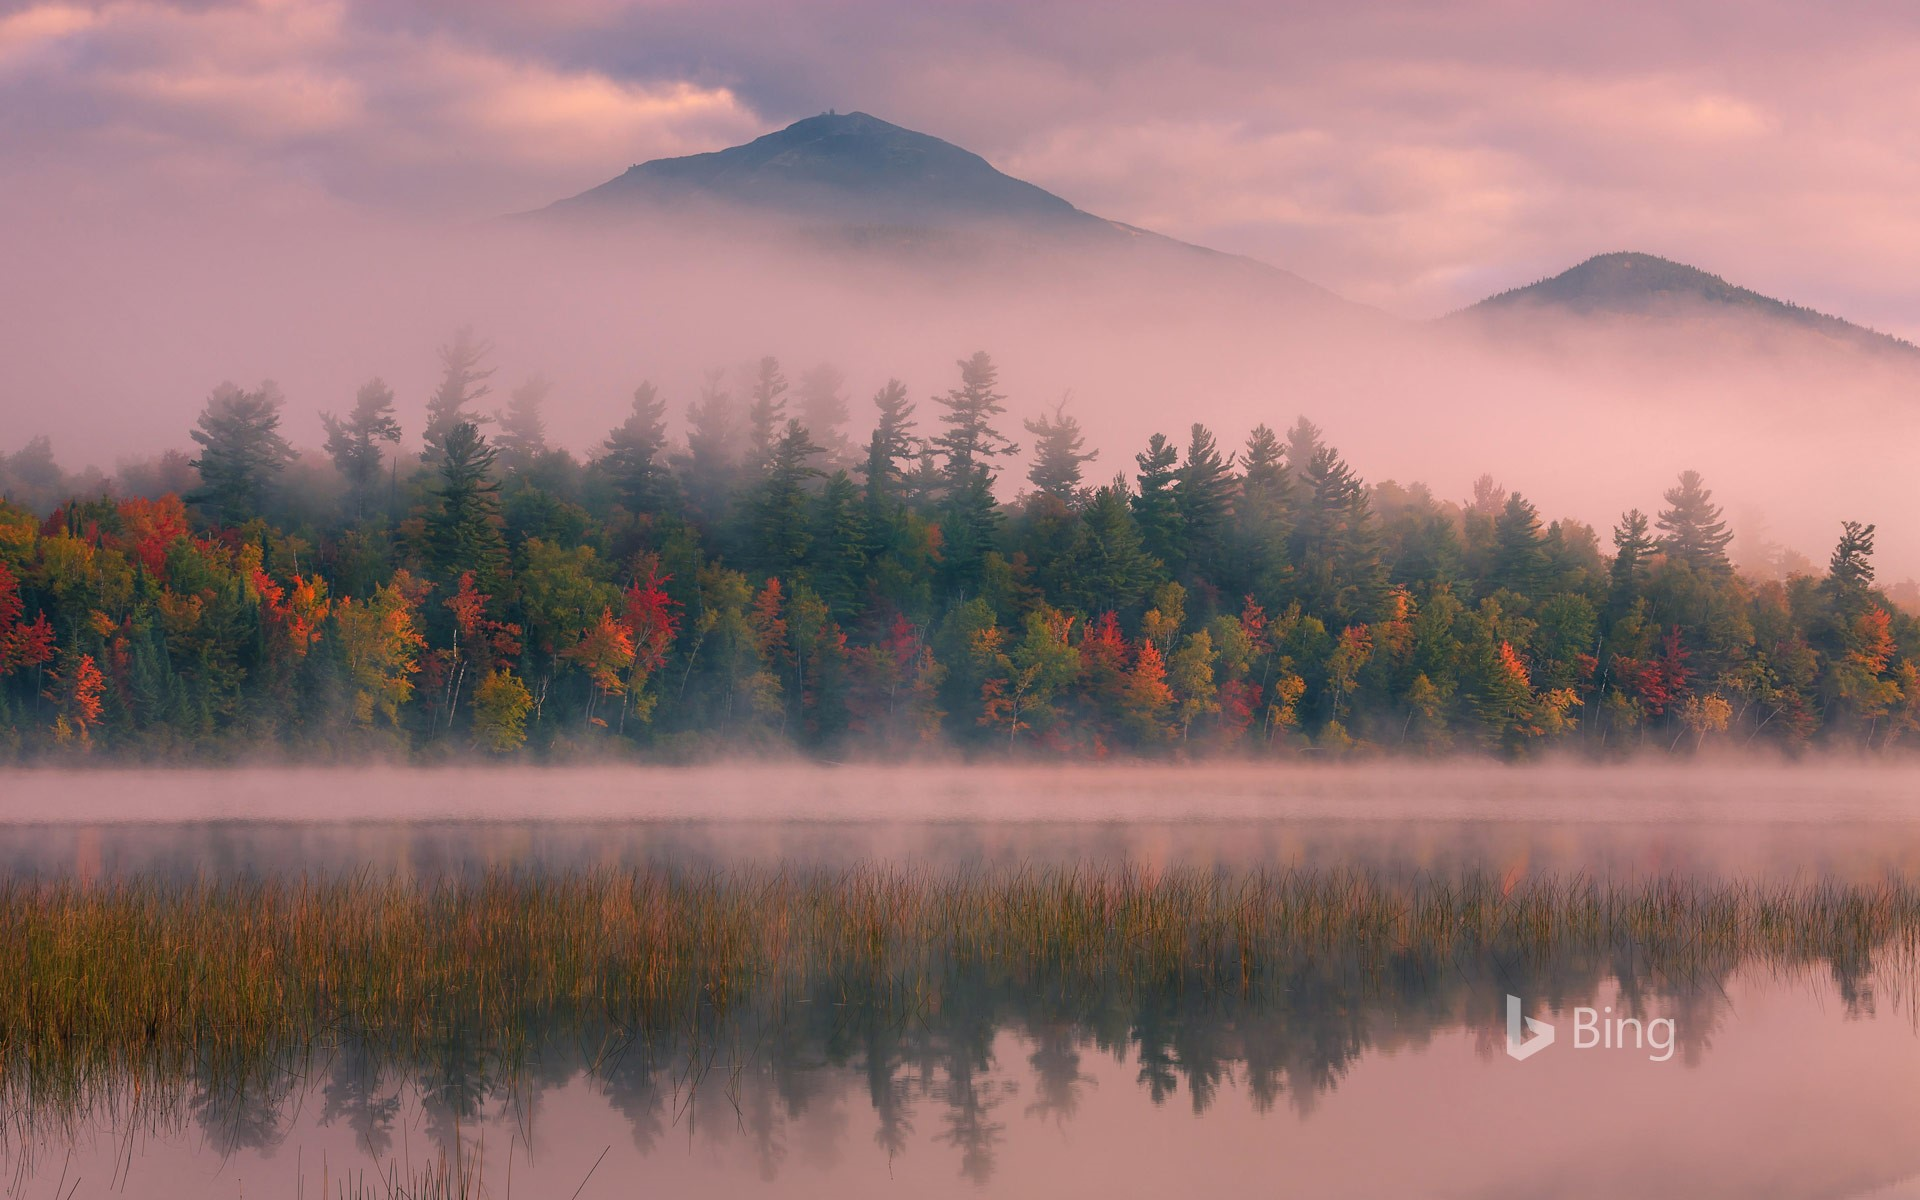 Connery Pond and Whiteface Mountain in New York state